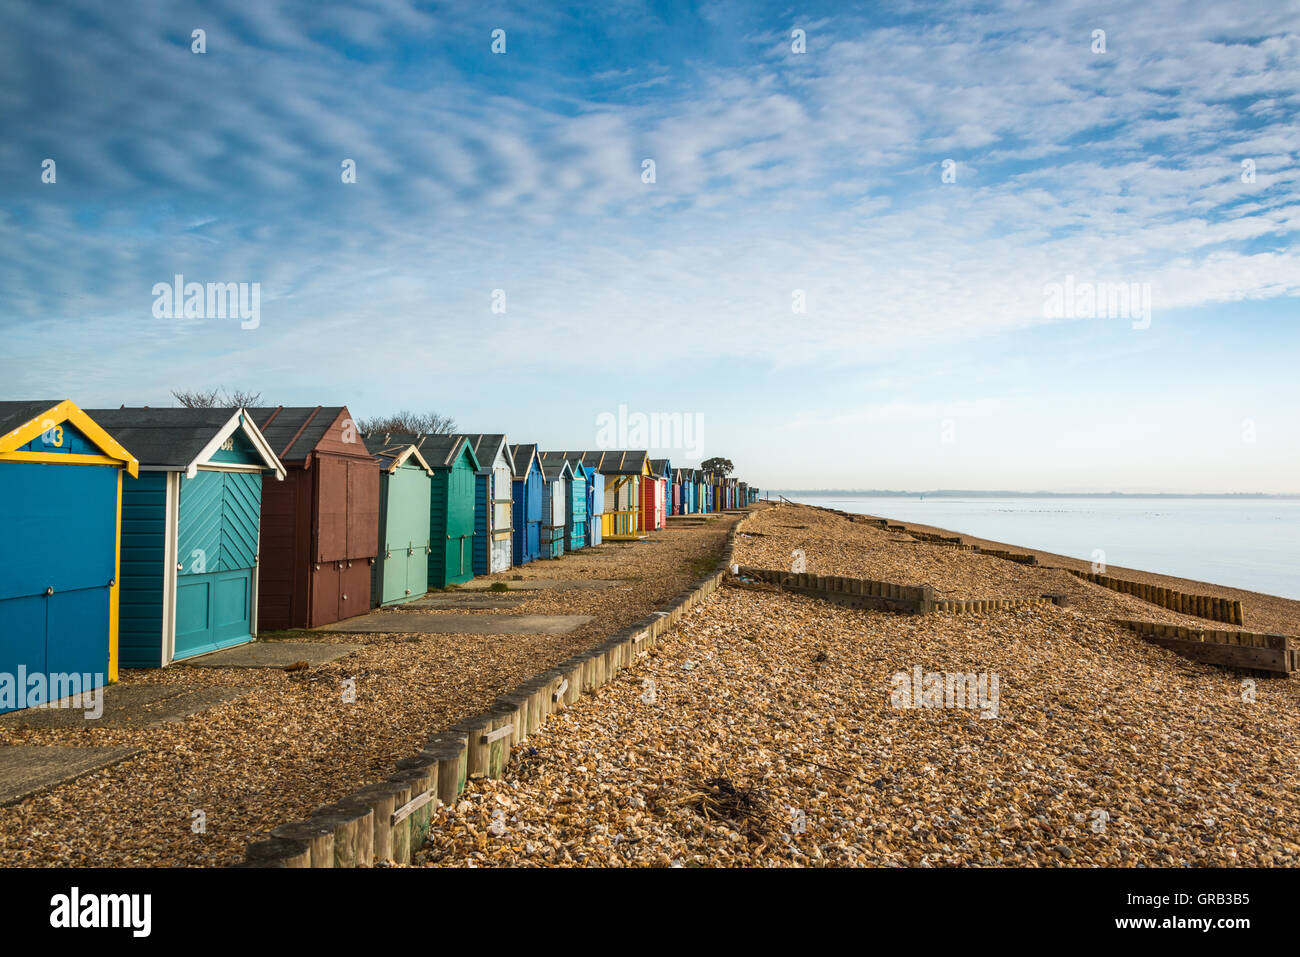 Beach huts on Calshot beach, Hampshire, UK - Stock Image